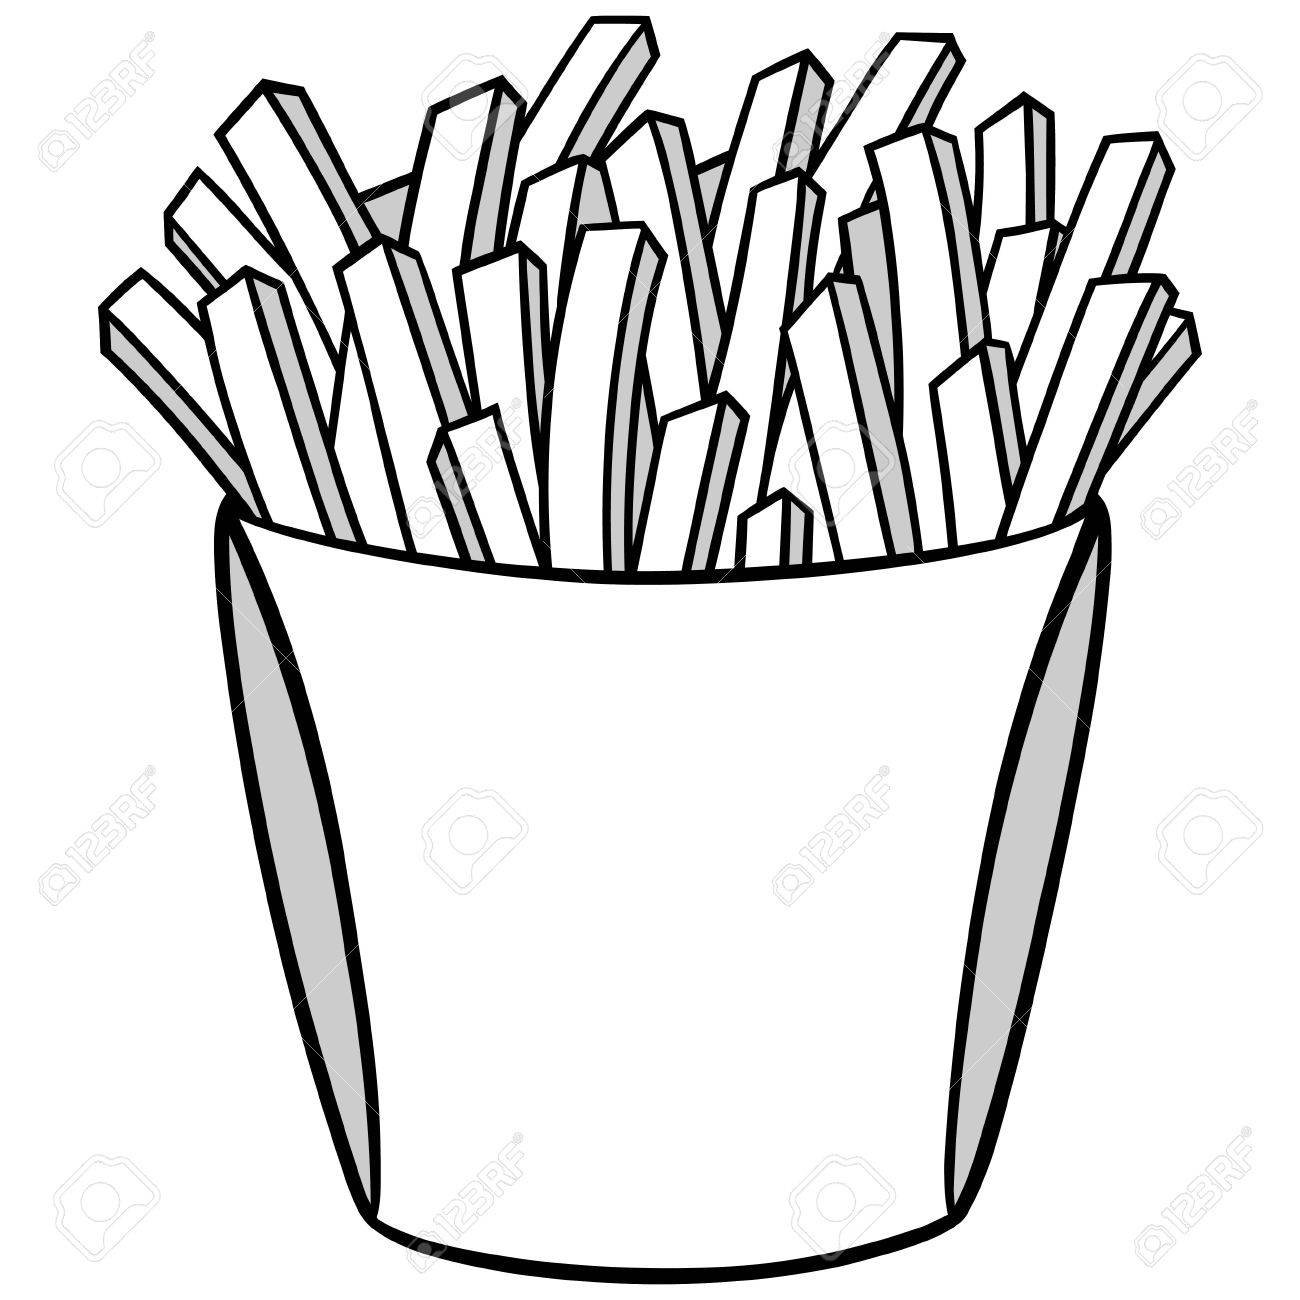 1300x1300 French Fries Illustration Royalty Free Cliparts, Vectors,